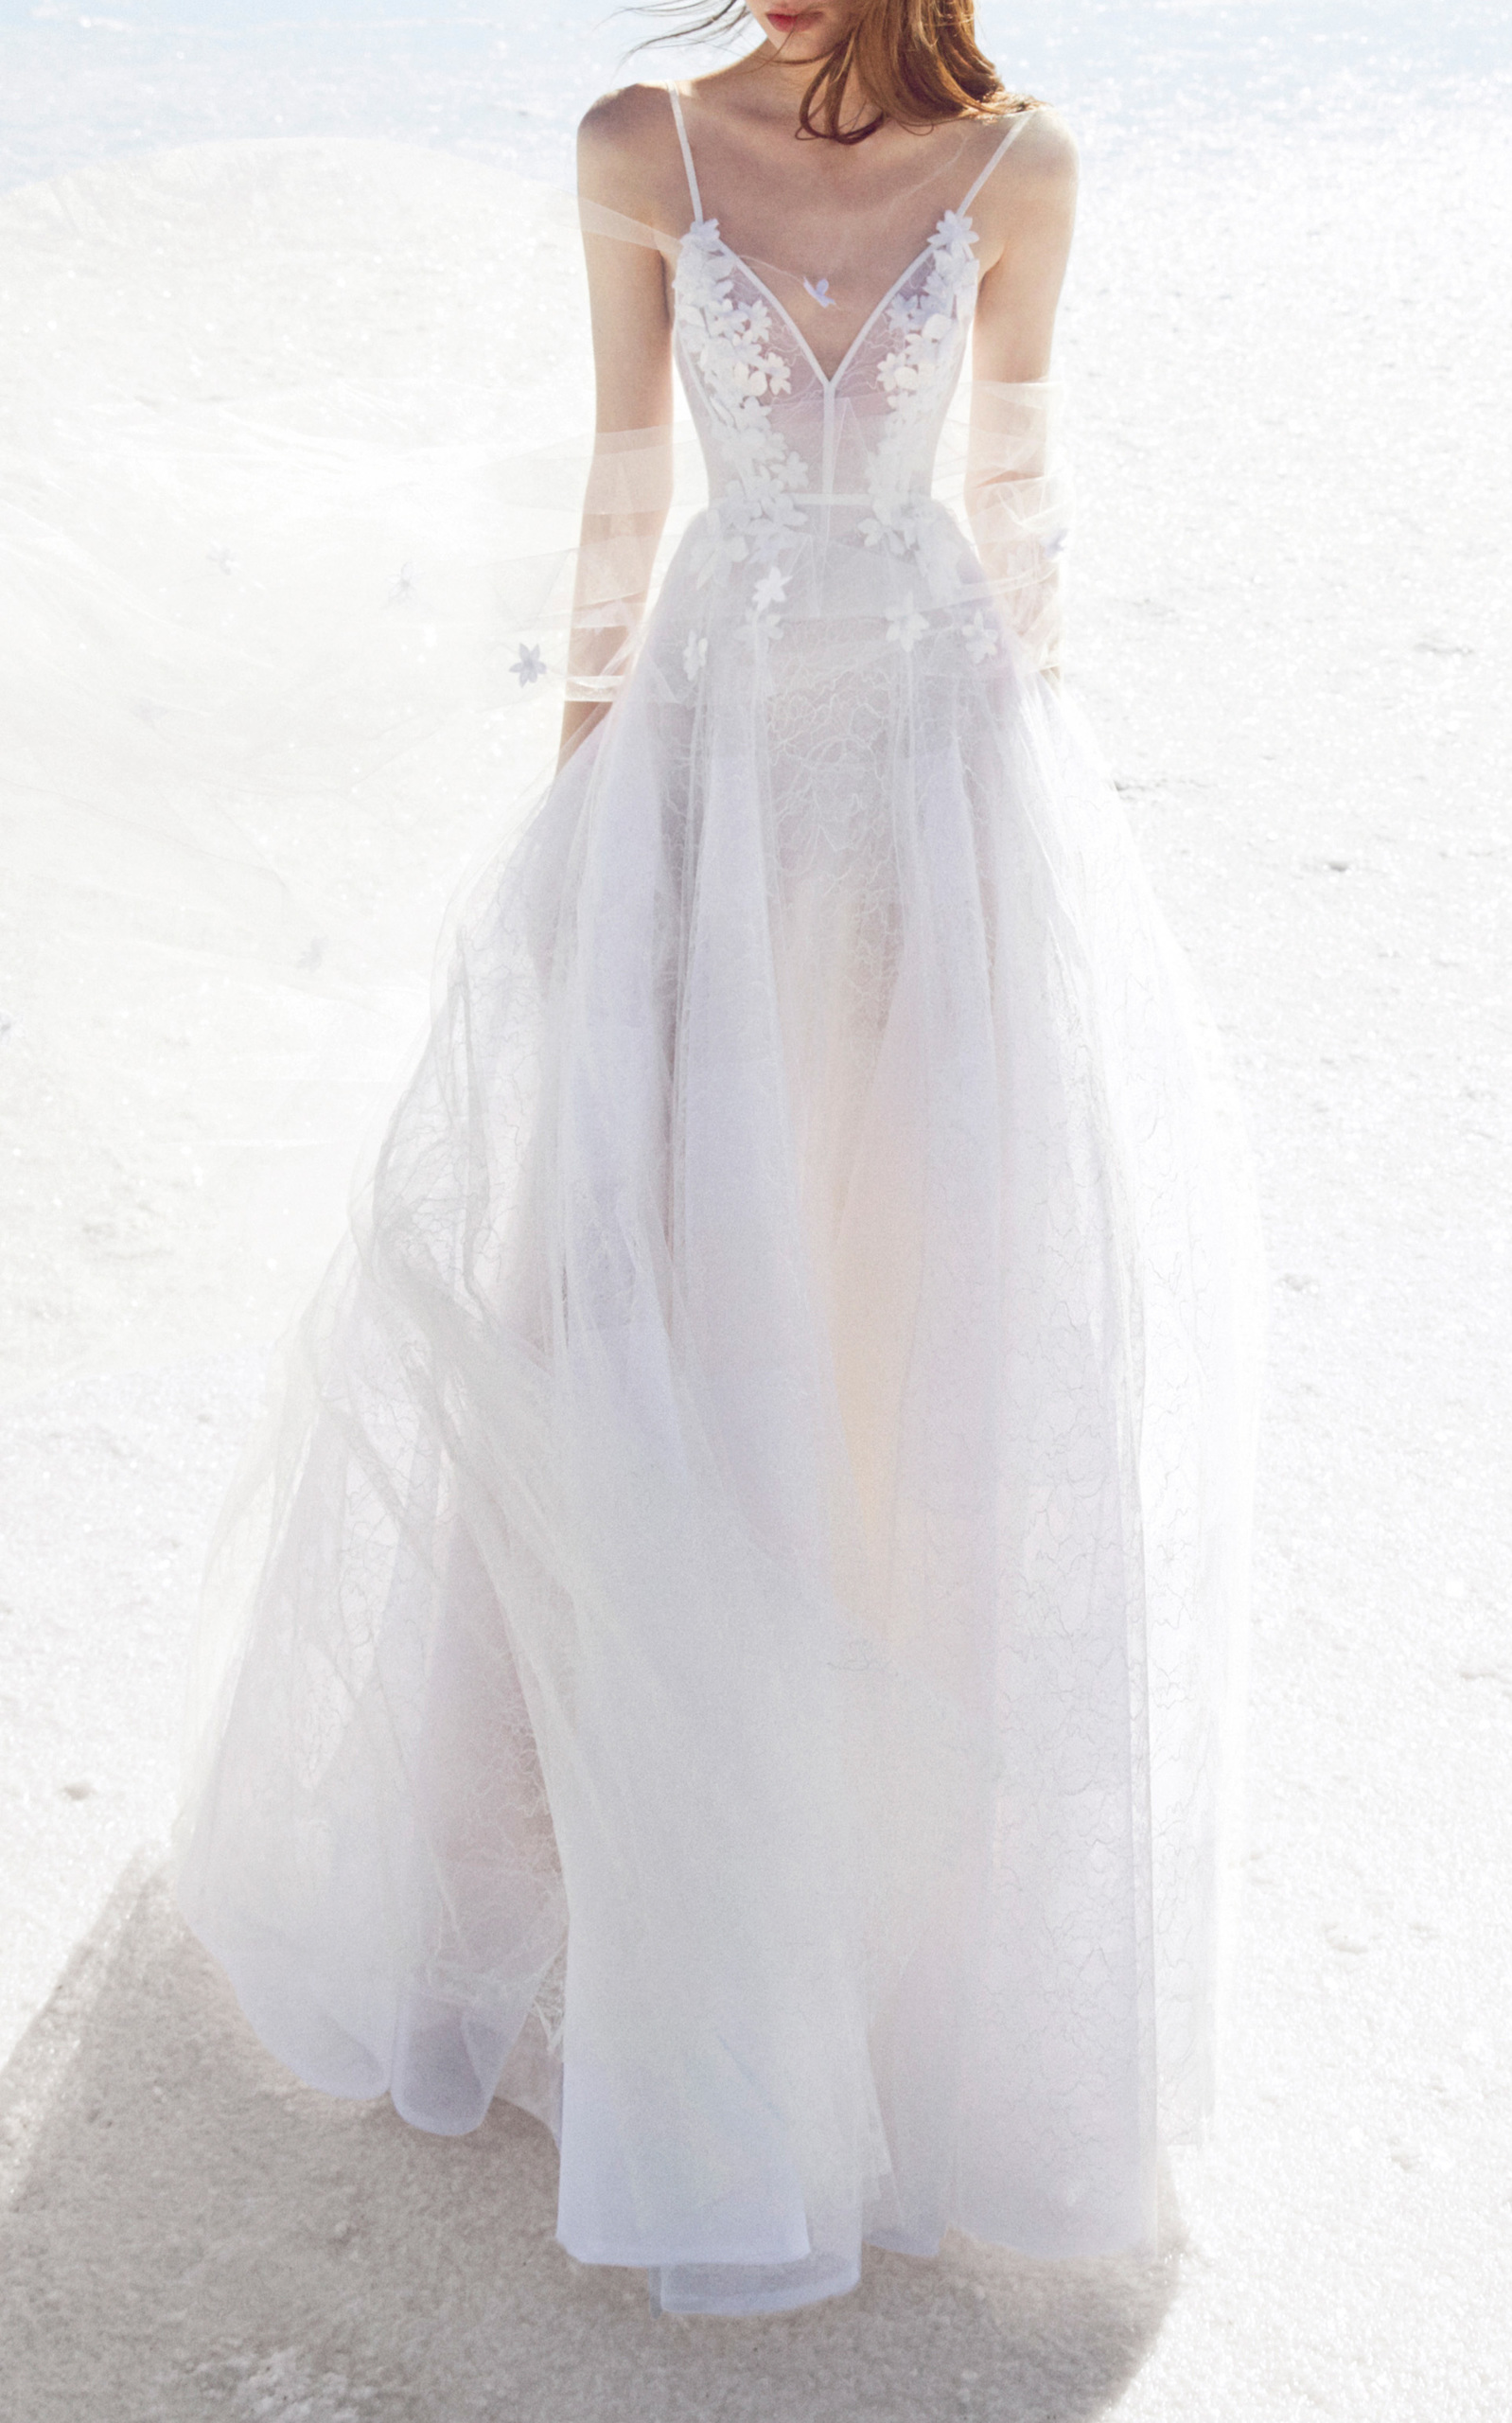 Anna Lace Floral Embellished Gown by Alex Perry Bride | Moda Operandi